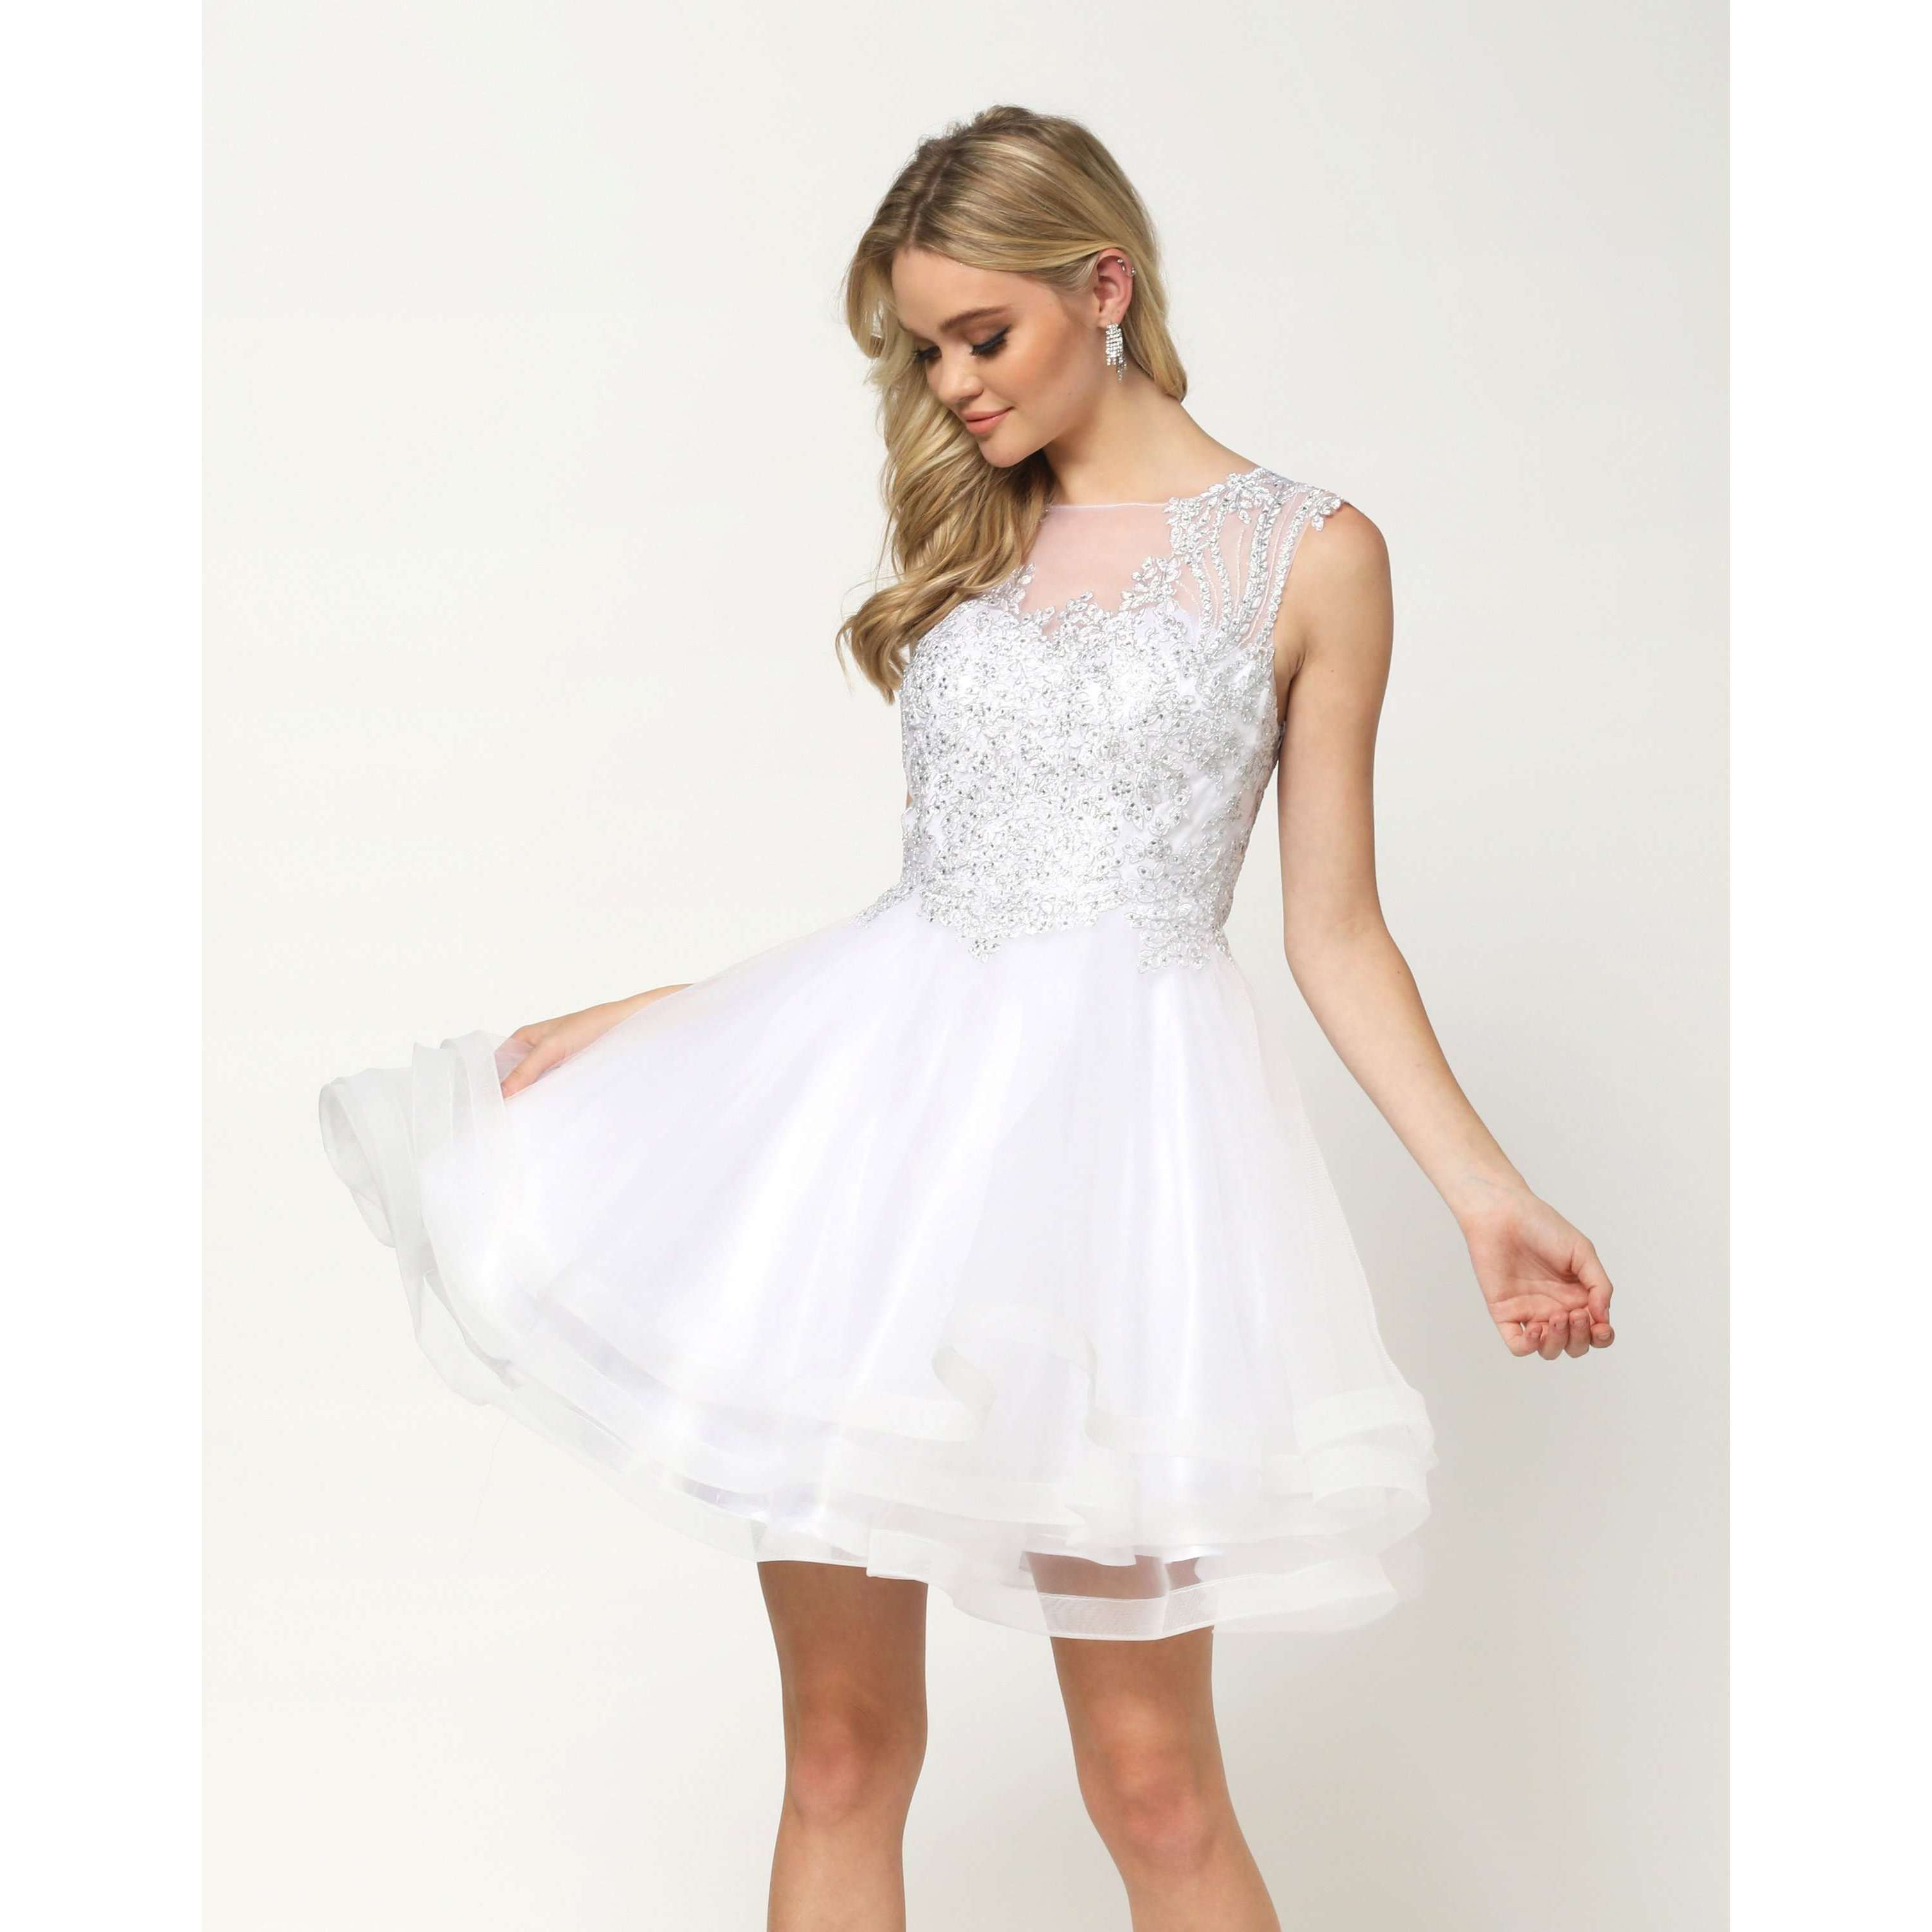 Metallic Embroidered Applique White Dress 830W - Julietdresses